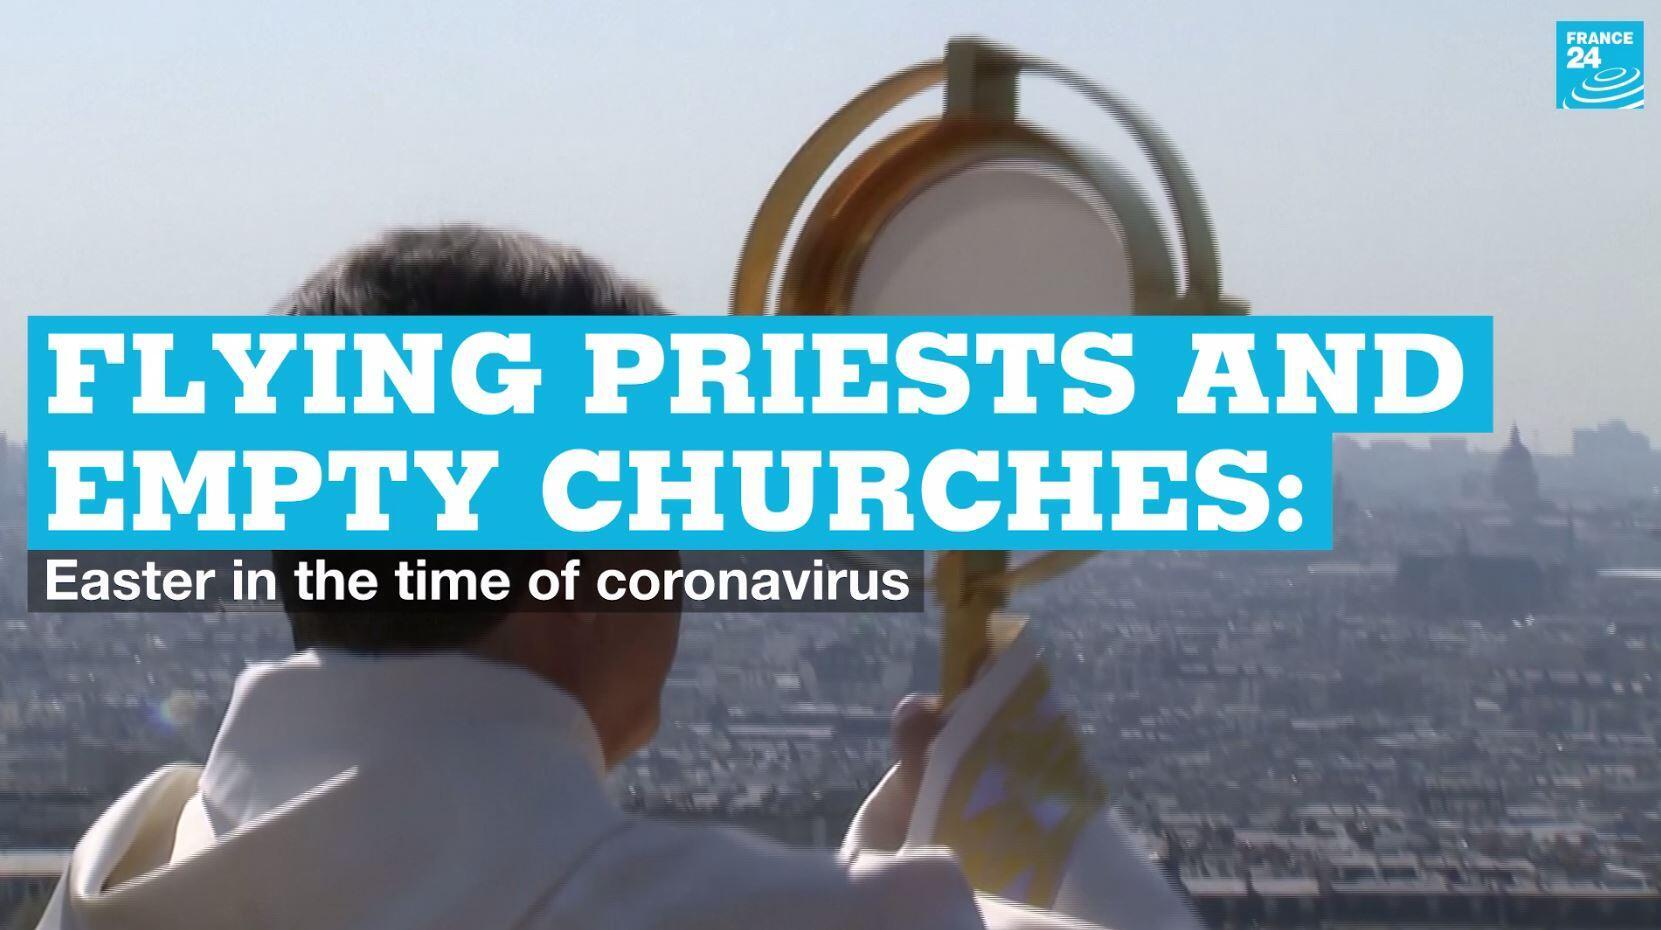 An Easter blessing is carried out by the archbishop of Paris on Thursday, April 9, 2020.